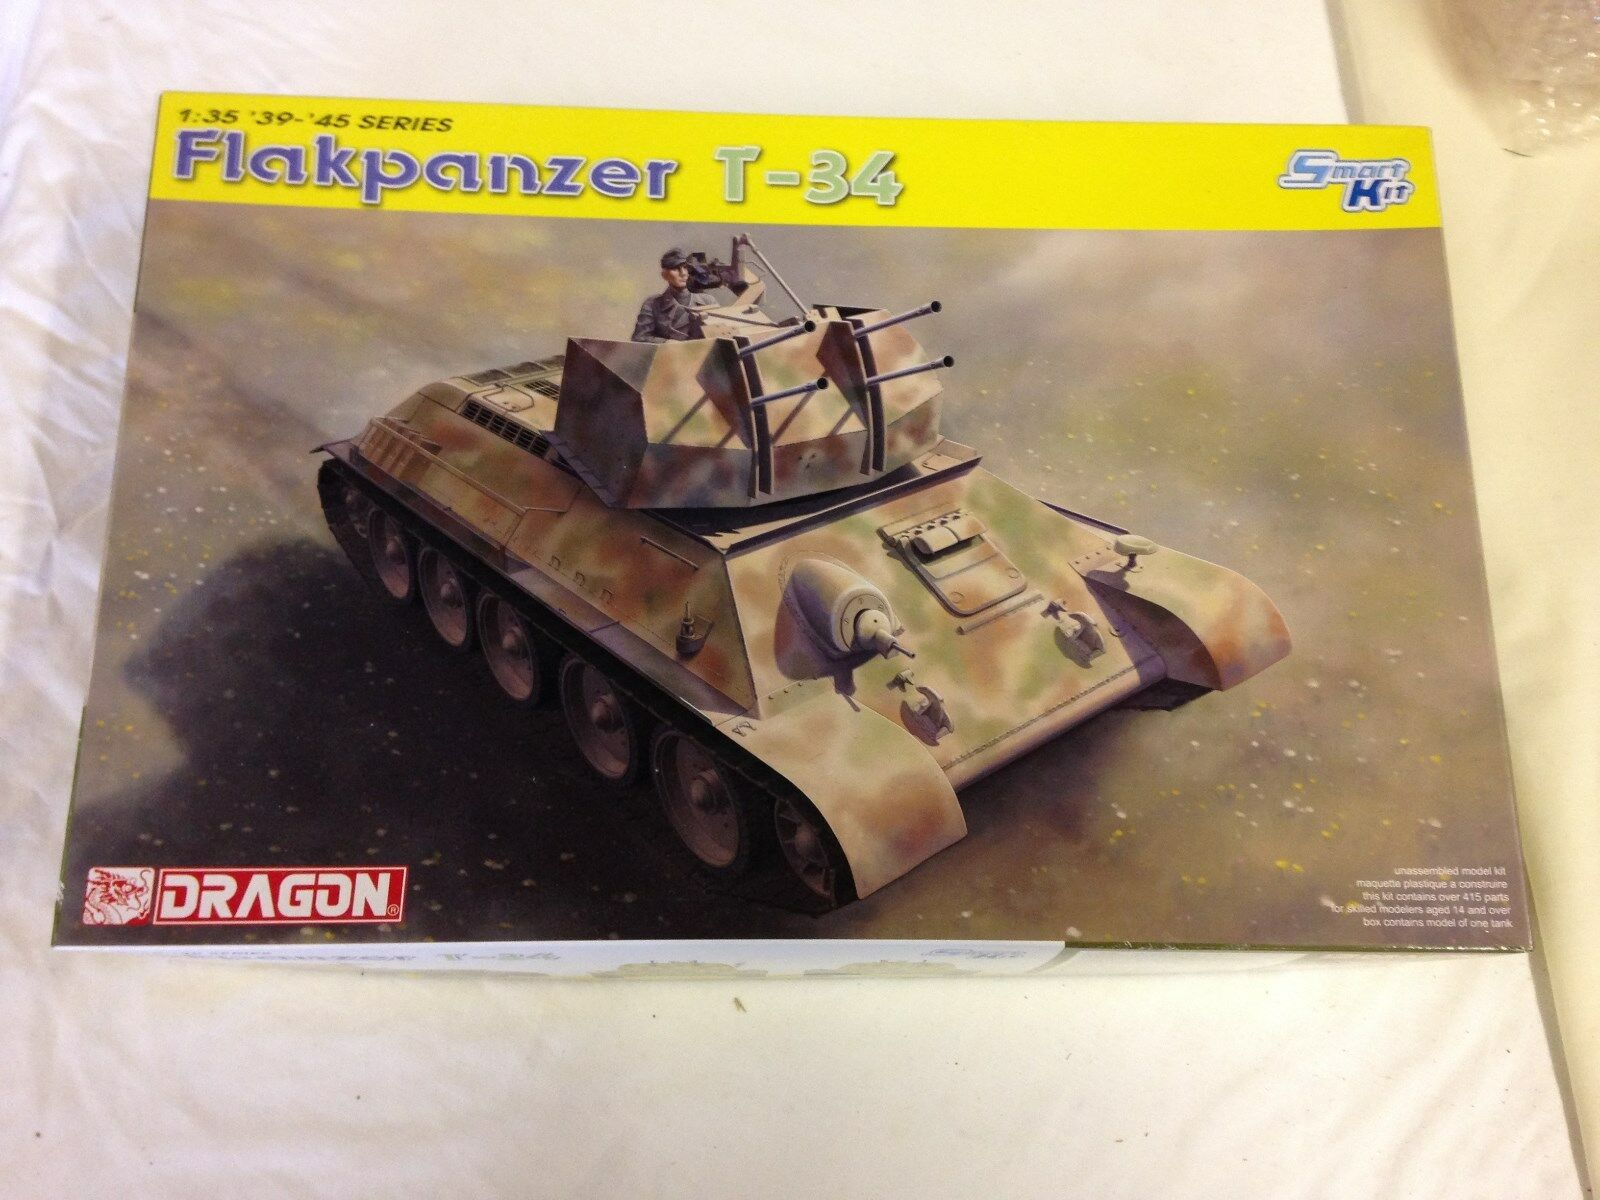 DRAGON  FLAKPANZER T-34  1 35th scale   No 6599  NEW IN BOX